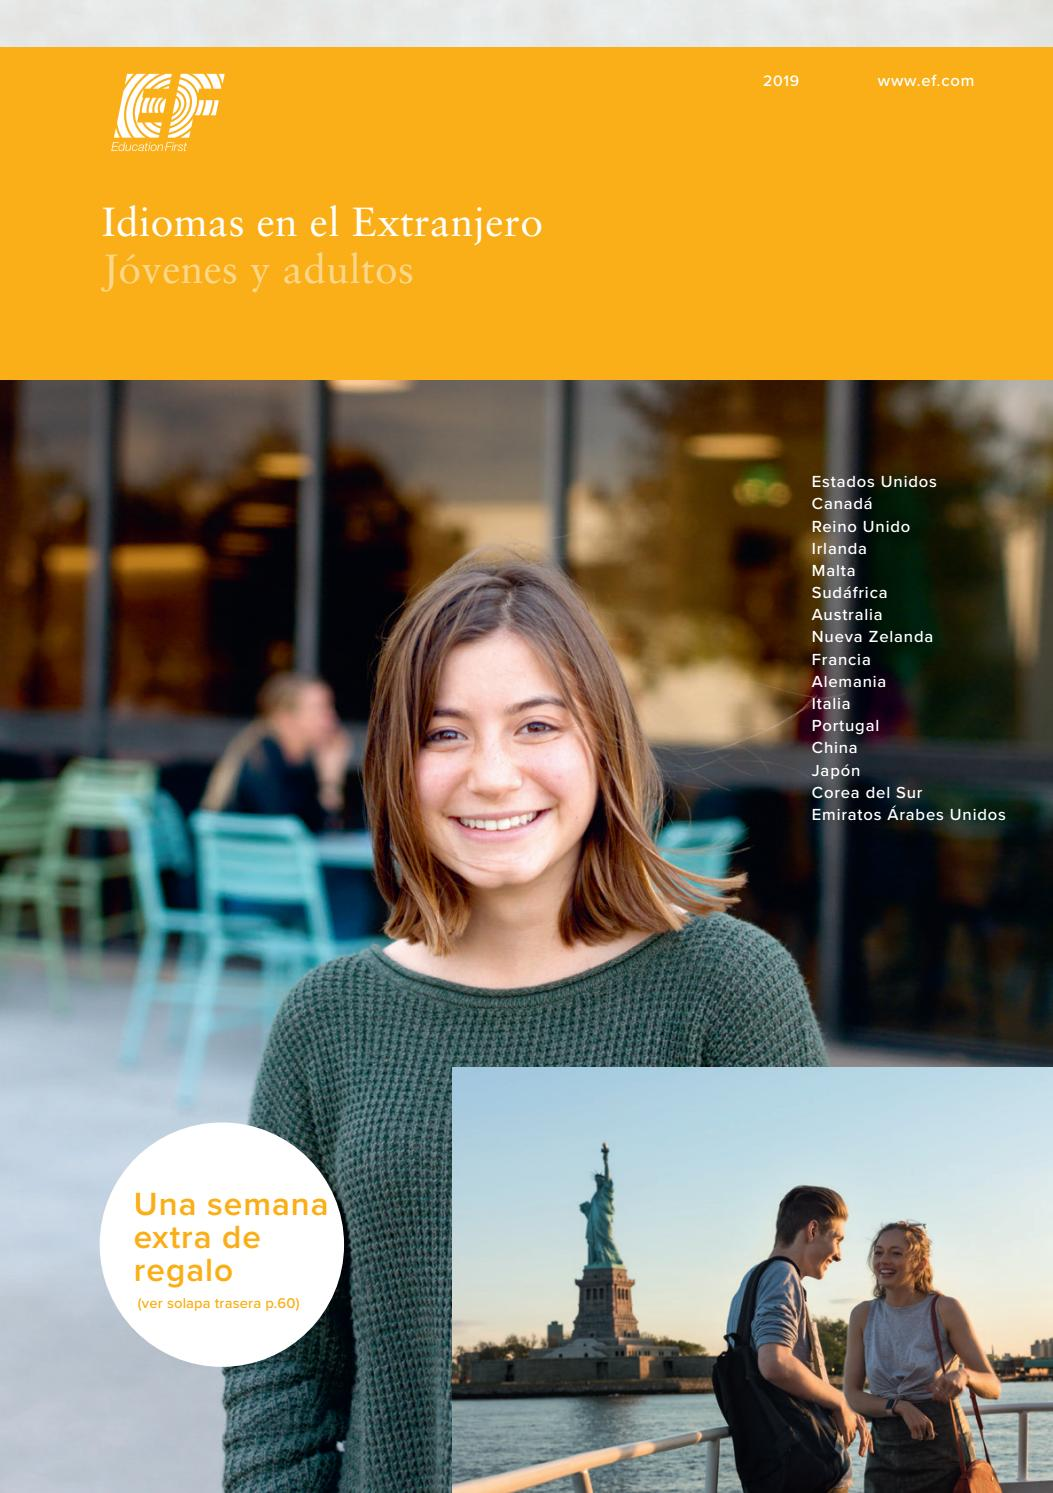 Oxford Libros Hijos Profesores 2019 Uy Ilsu D1 2018 By Ef Education First Issuu